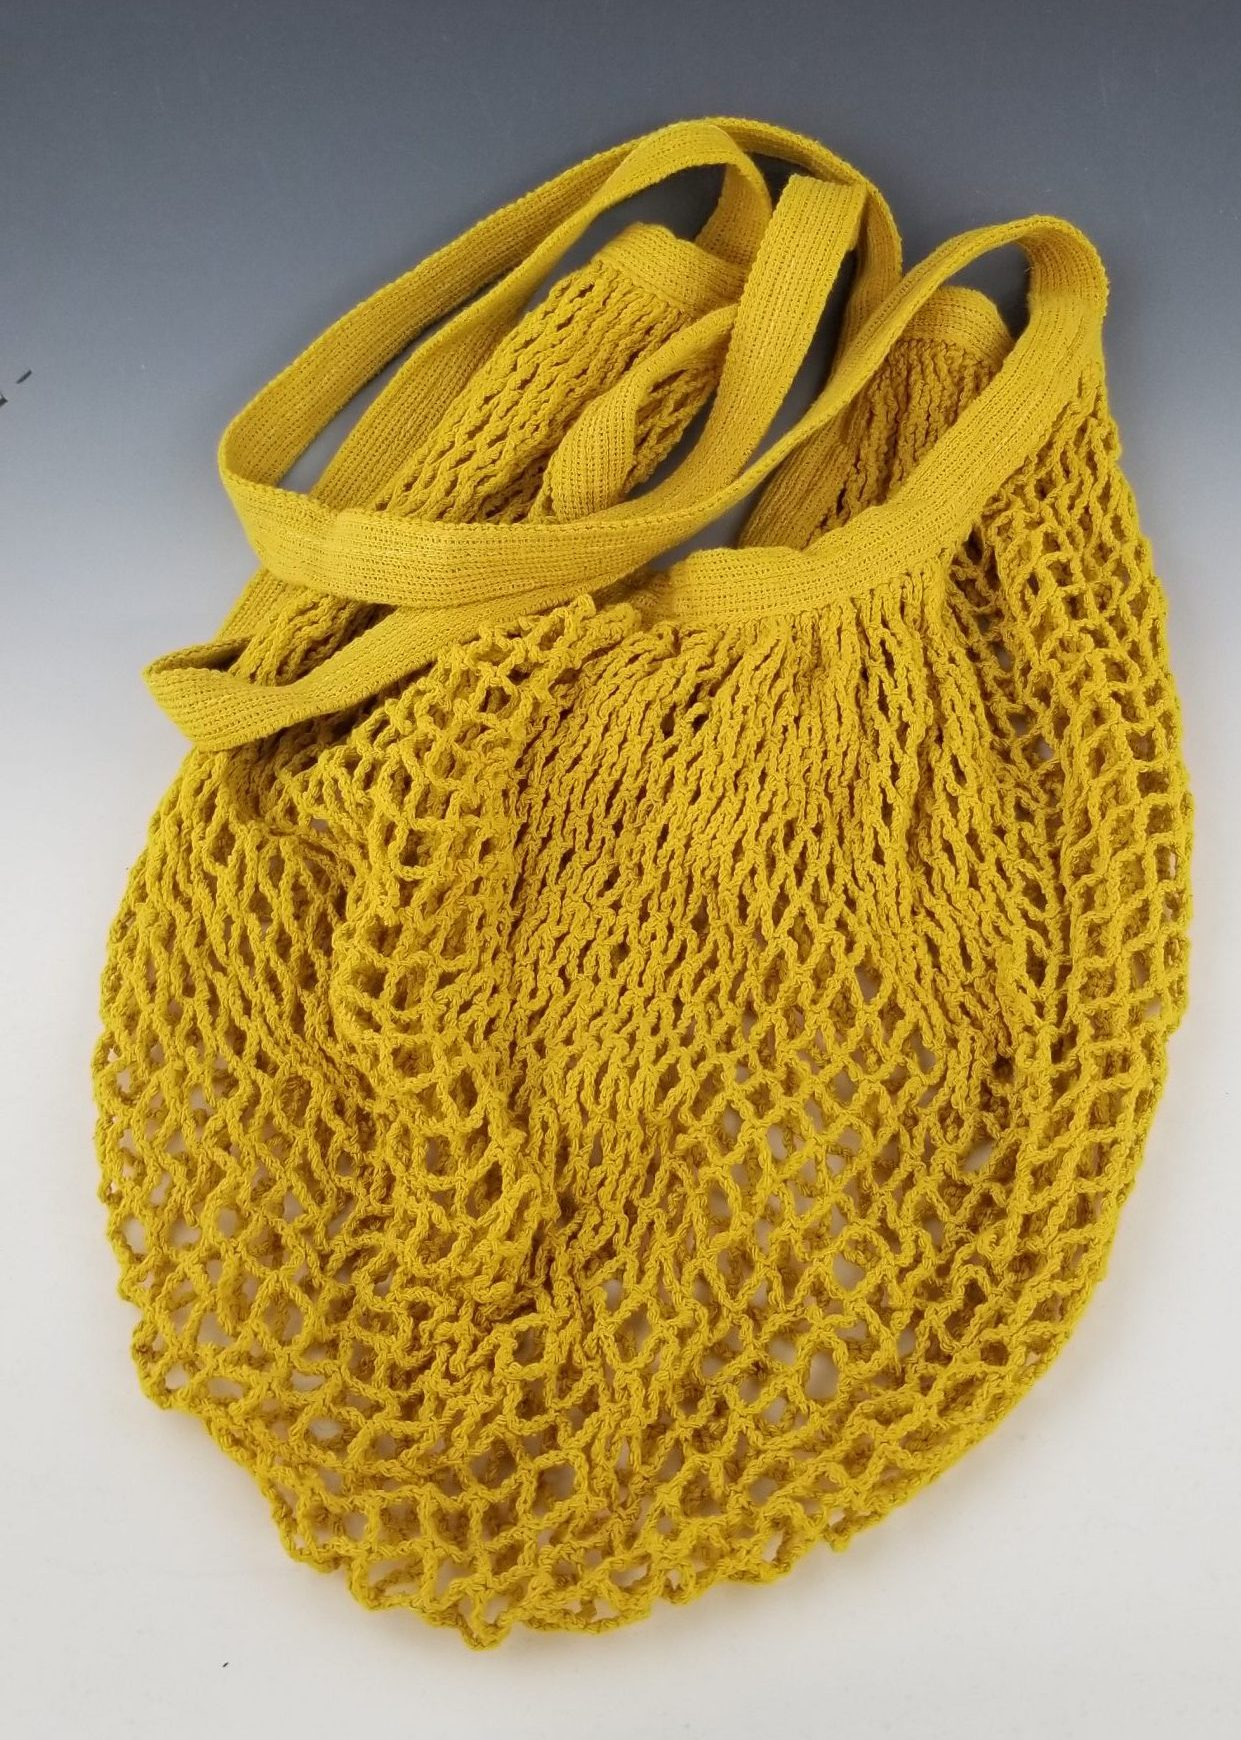 Yellow Cotton Market Bag with Long Handles